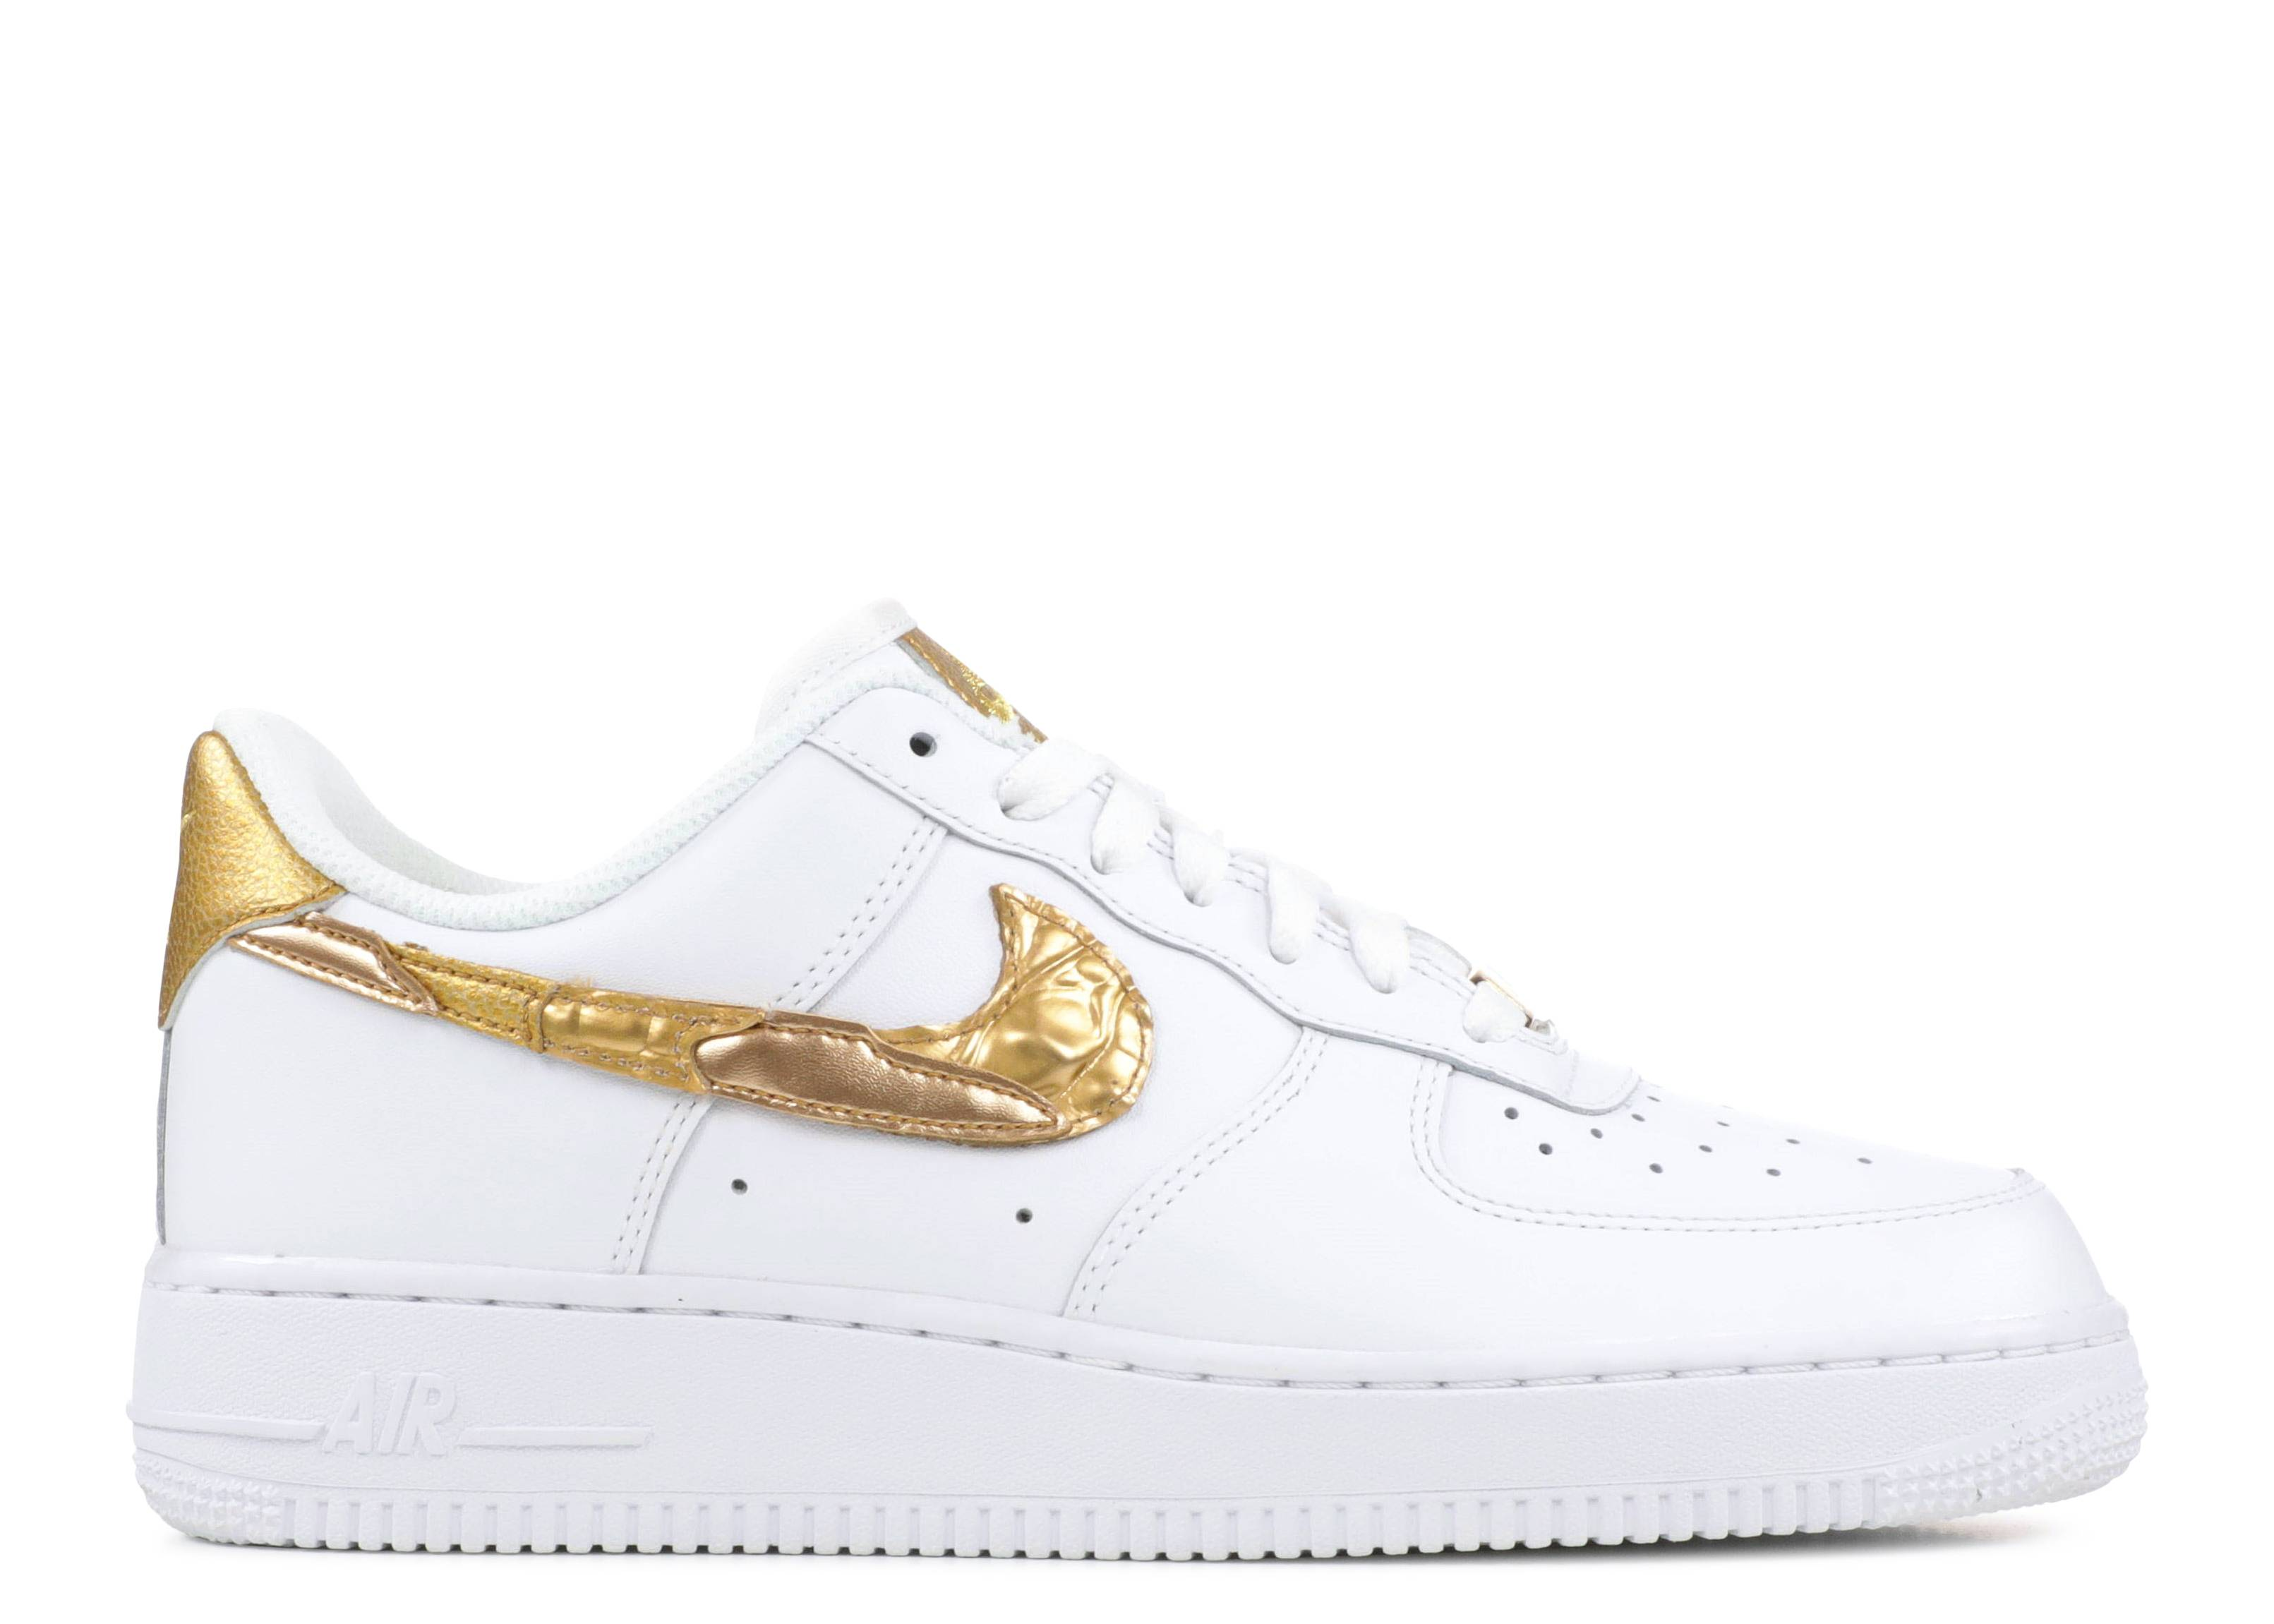 Nike Air Force 1 07 CR7 Golden Patchwork UK 12